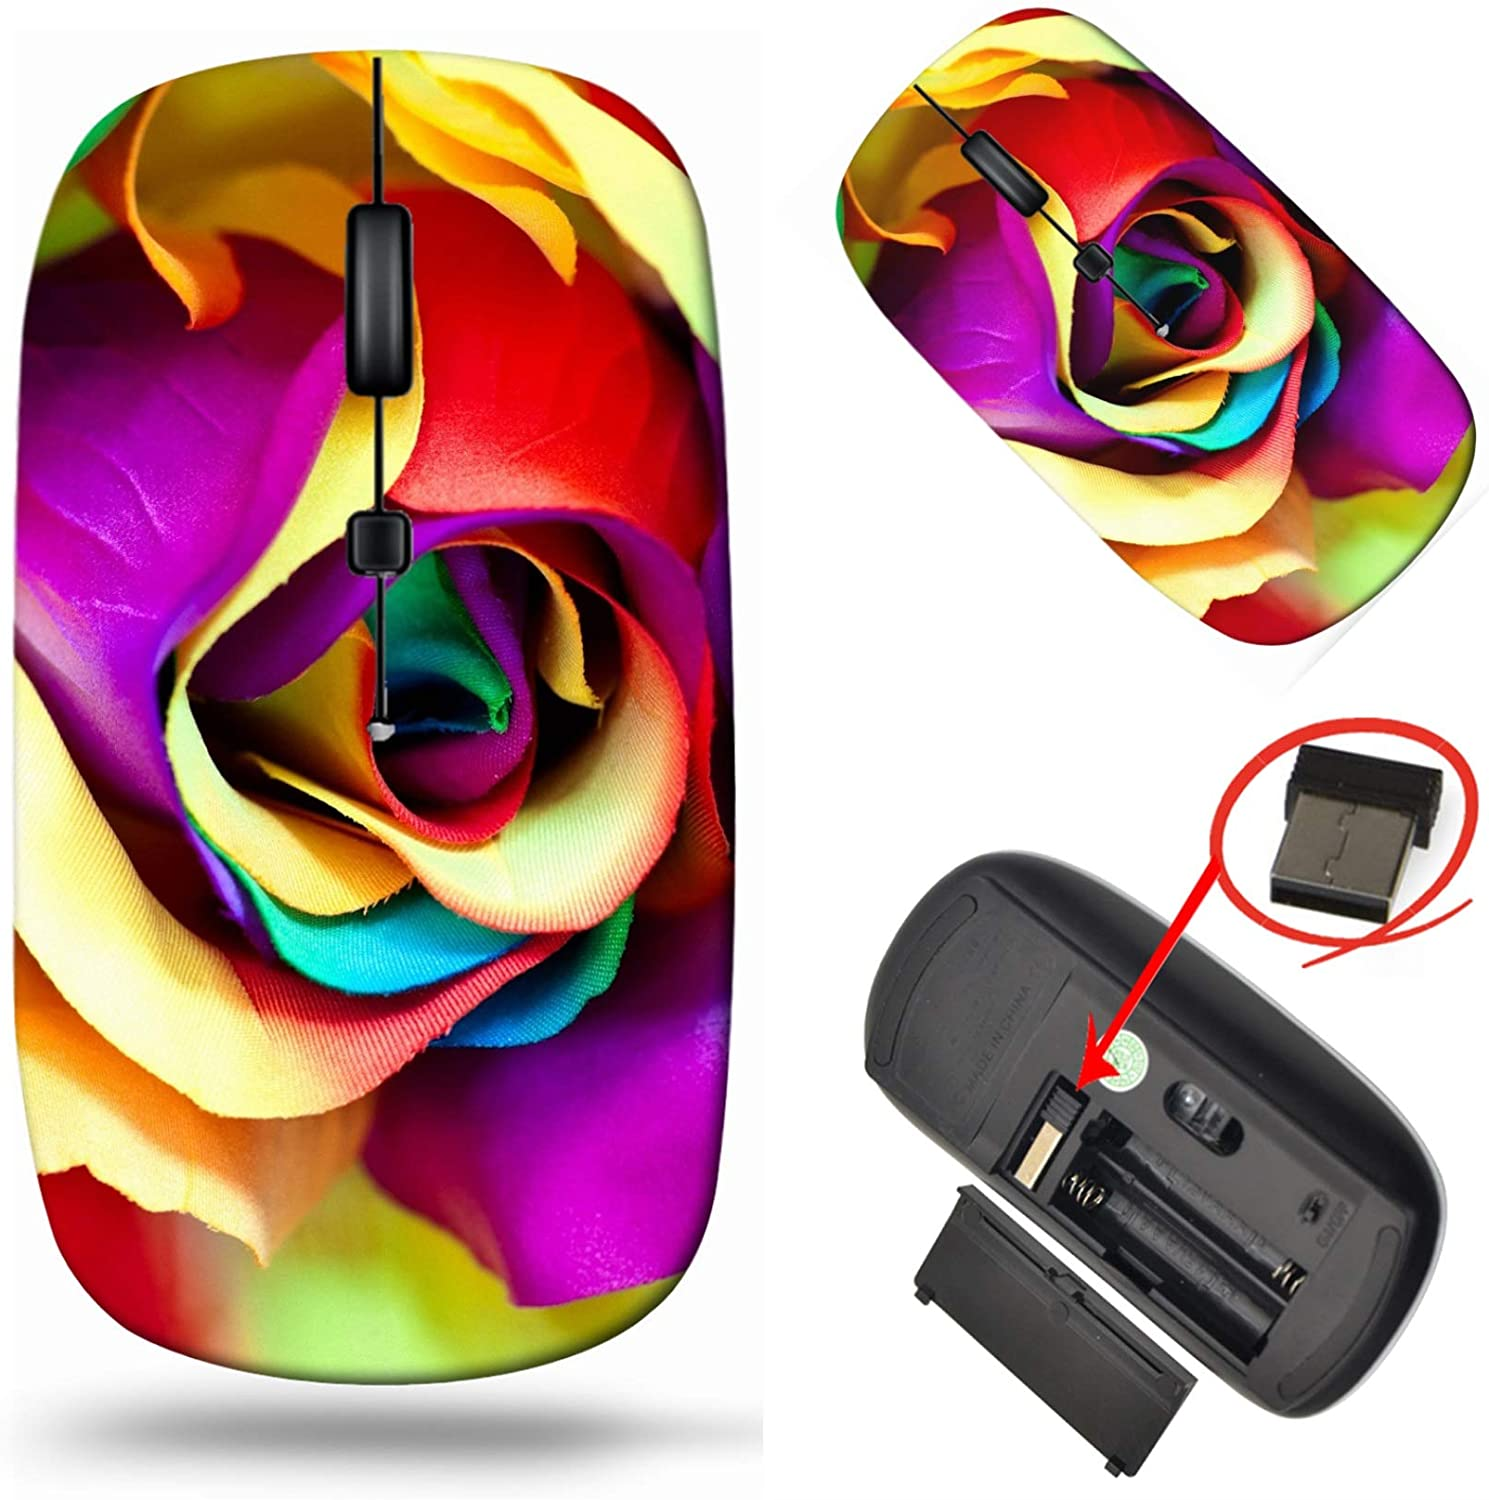 MSD Laptop Wireless Mouse Computer Branded goods USB Tra 2.4G